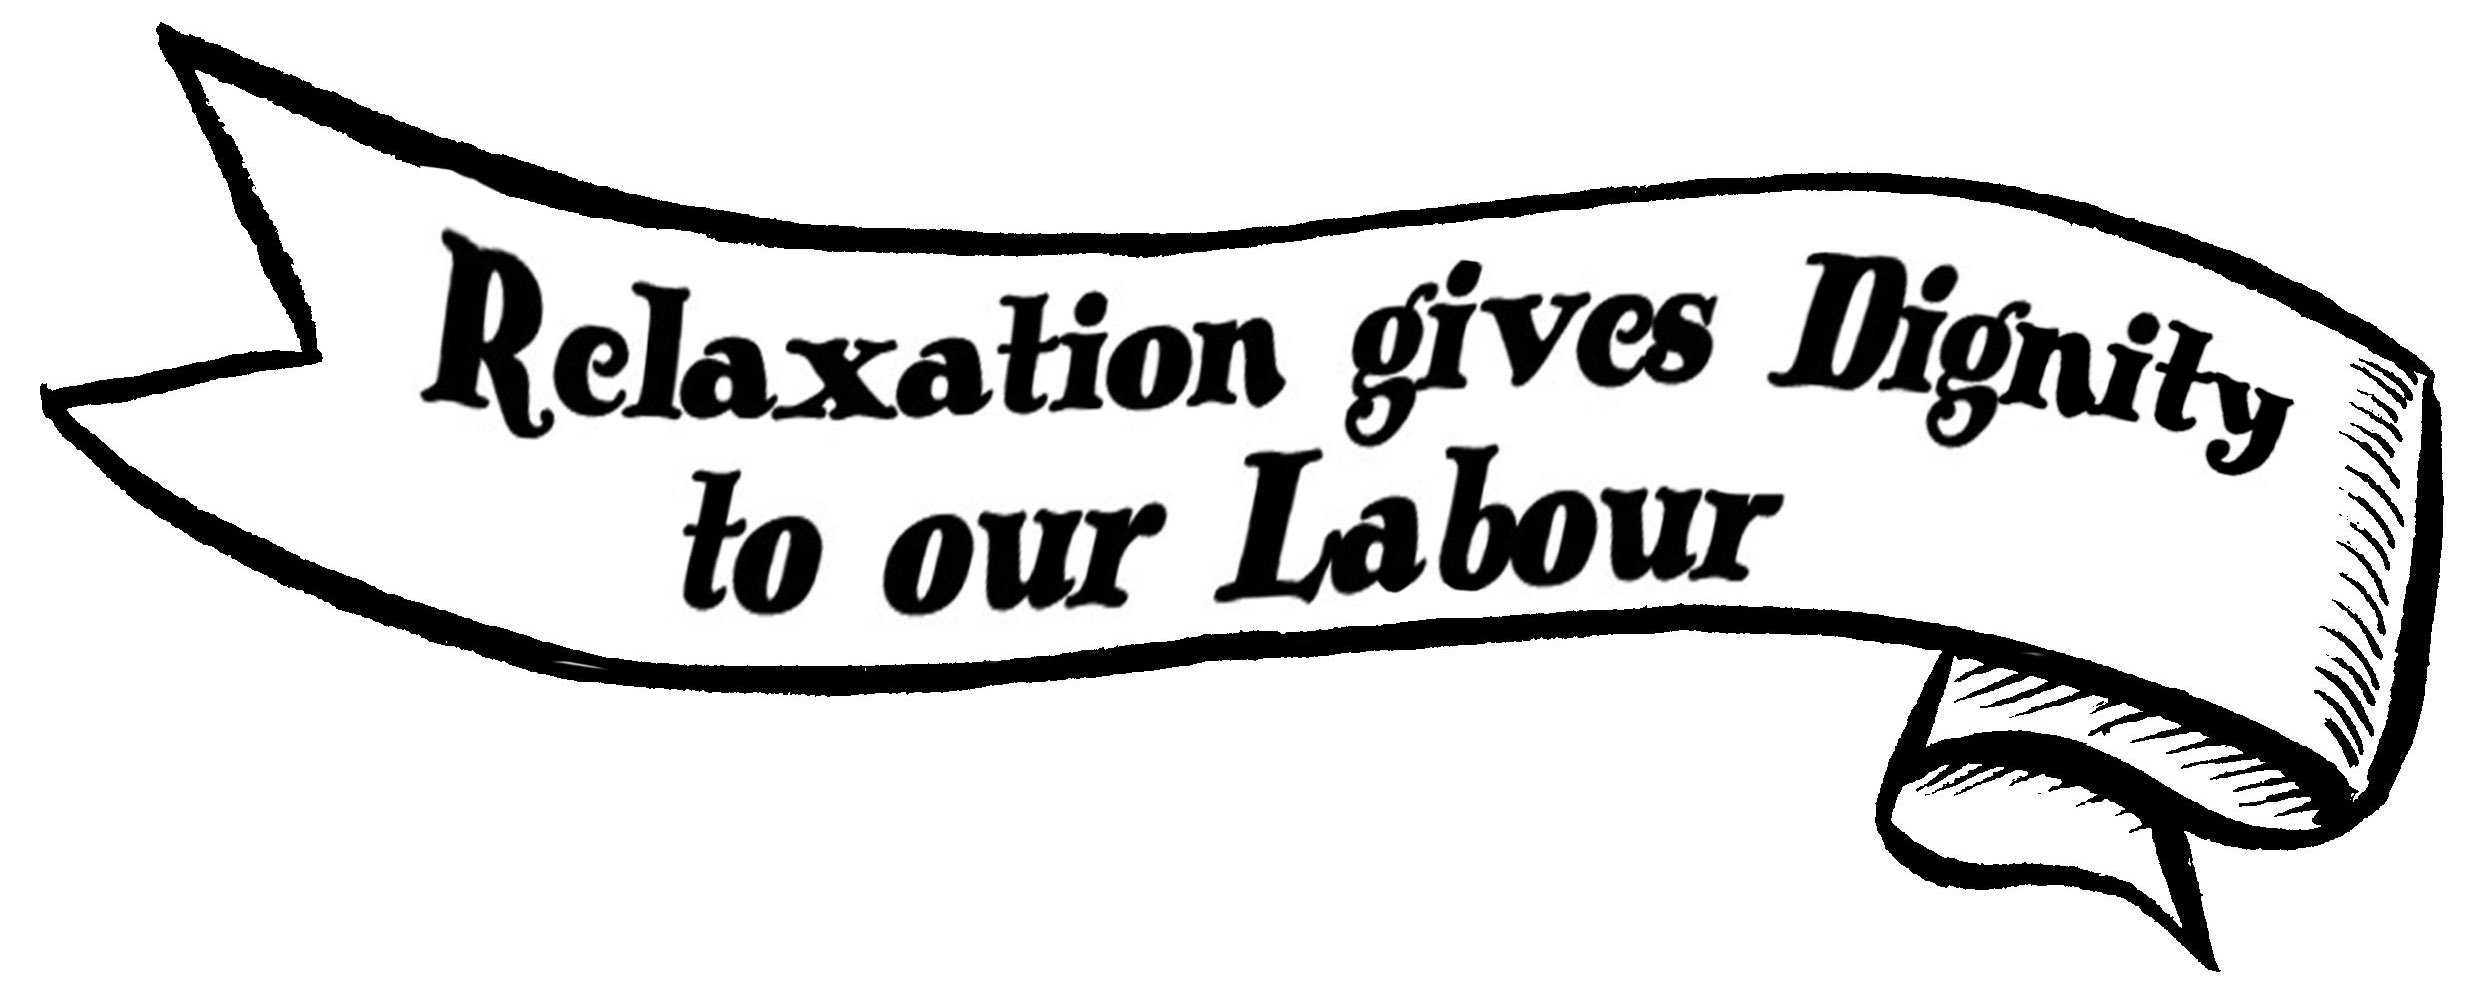 """A black and white illustration of a banner proclaiming """"relaxation gives dignity to our labour."""" The banner appears to be blowing in the wind."""